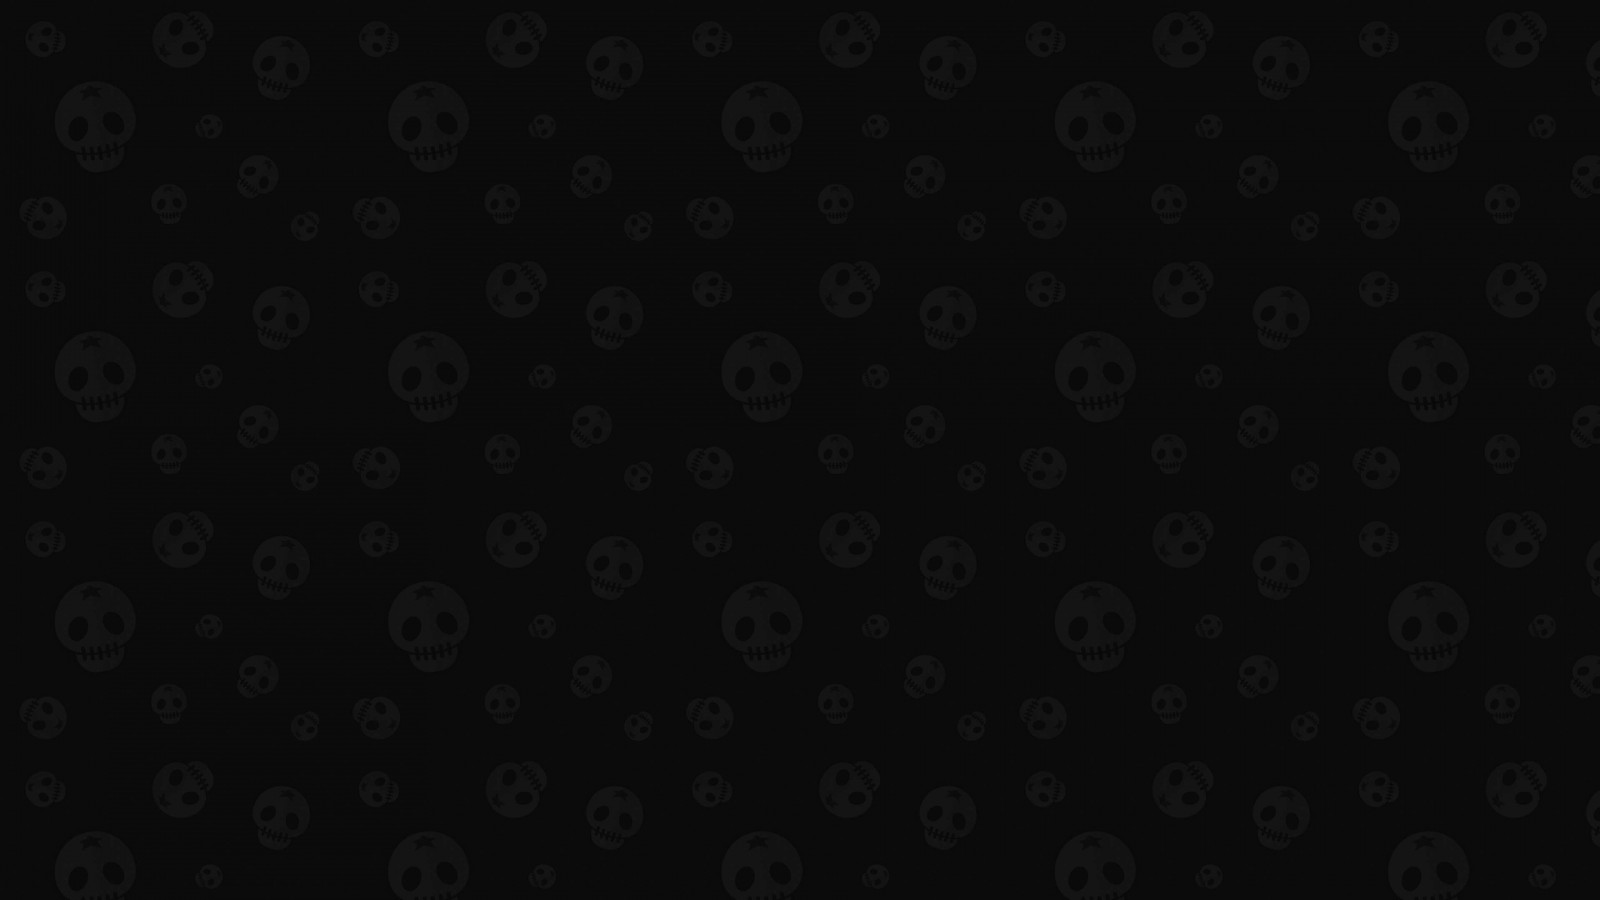 Star Skull Pattern Wallpaper for Desktop 1600x900